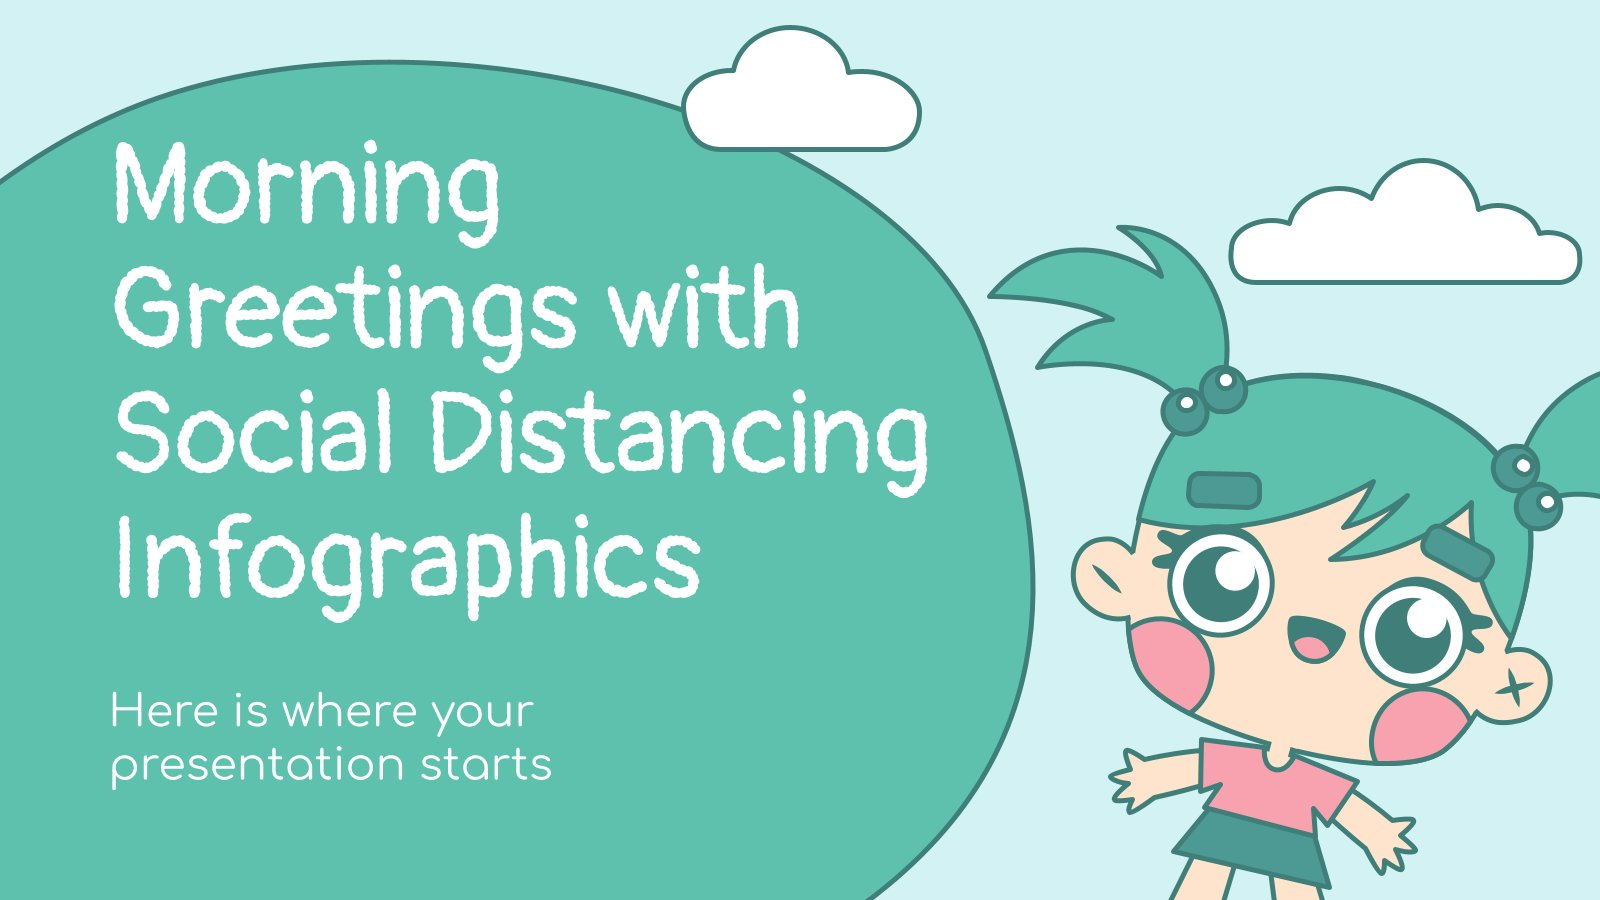 Morning Greetings with Social Distancing Infographics presentation template